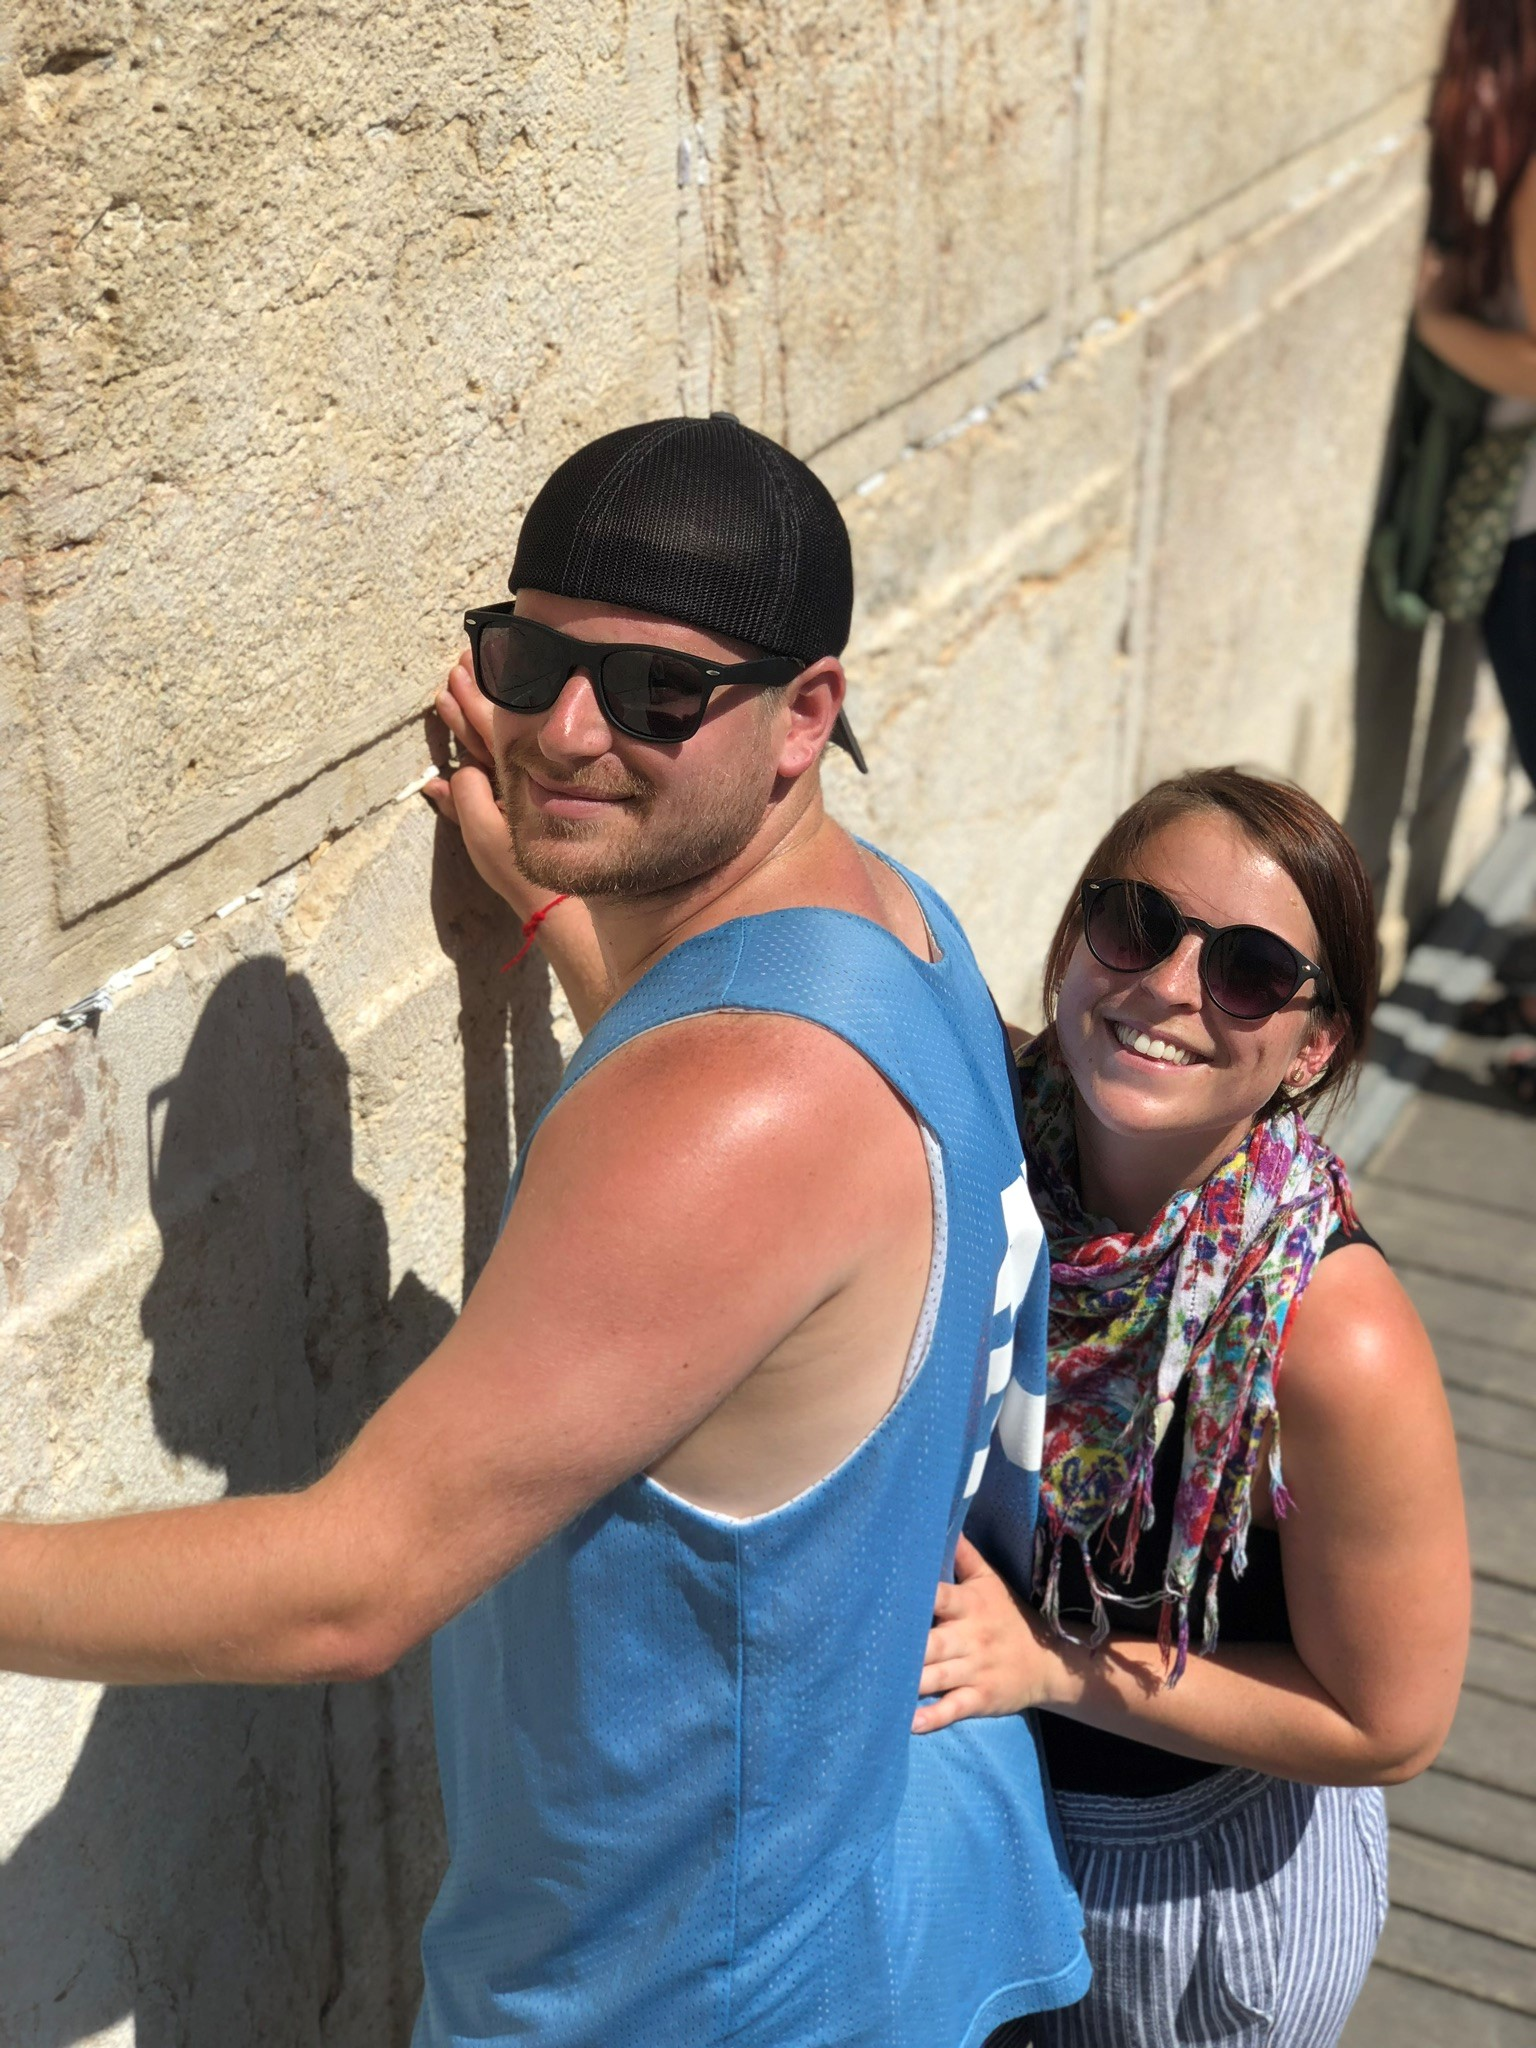 """""""Samantha never really felt a connection at the Western Wall until we stood there together. It was amazing for me to know my presence and love for her helped her connect to our holiest place on Earth."""""""